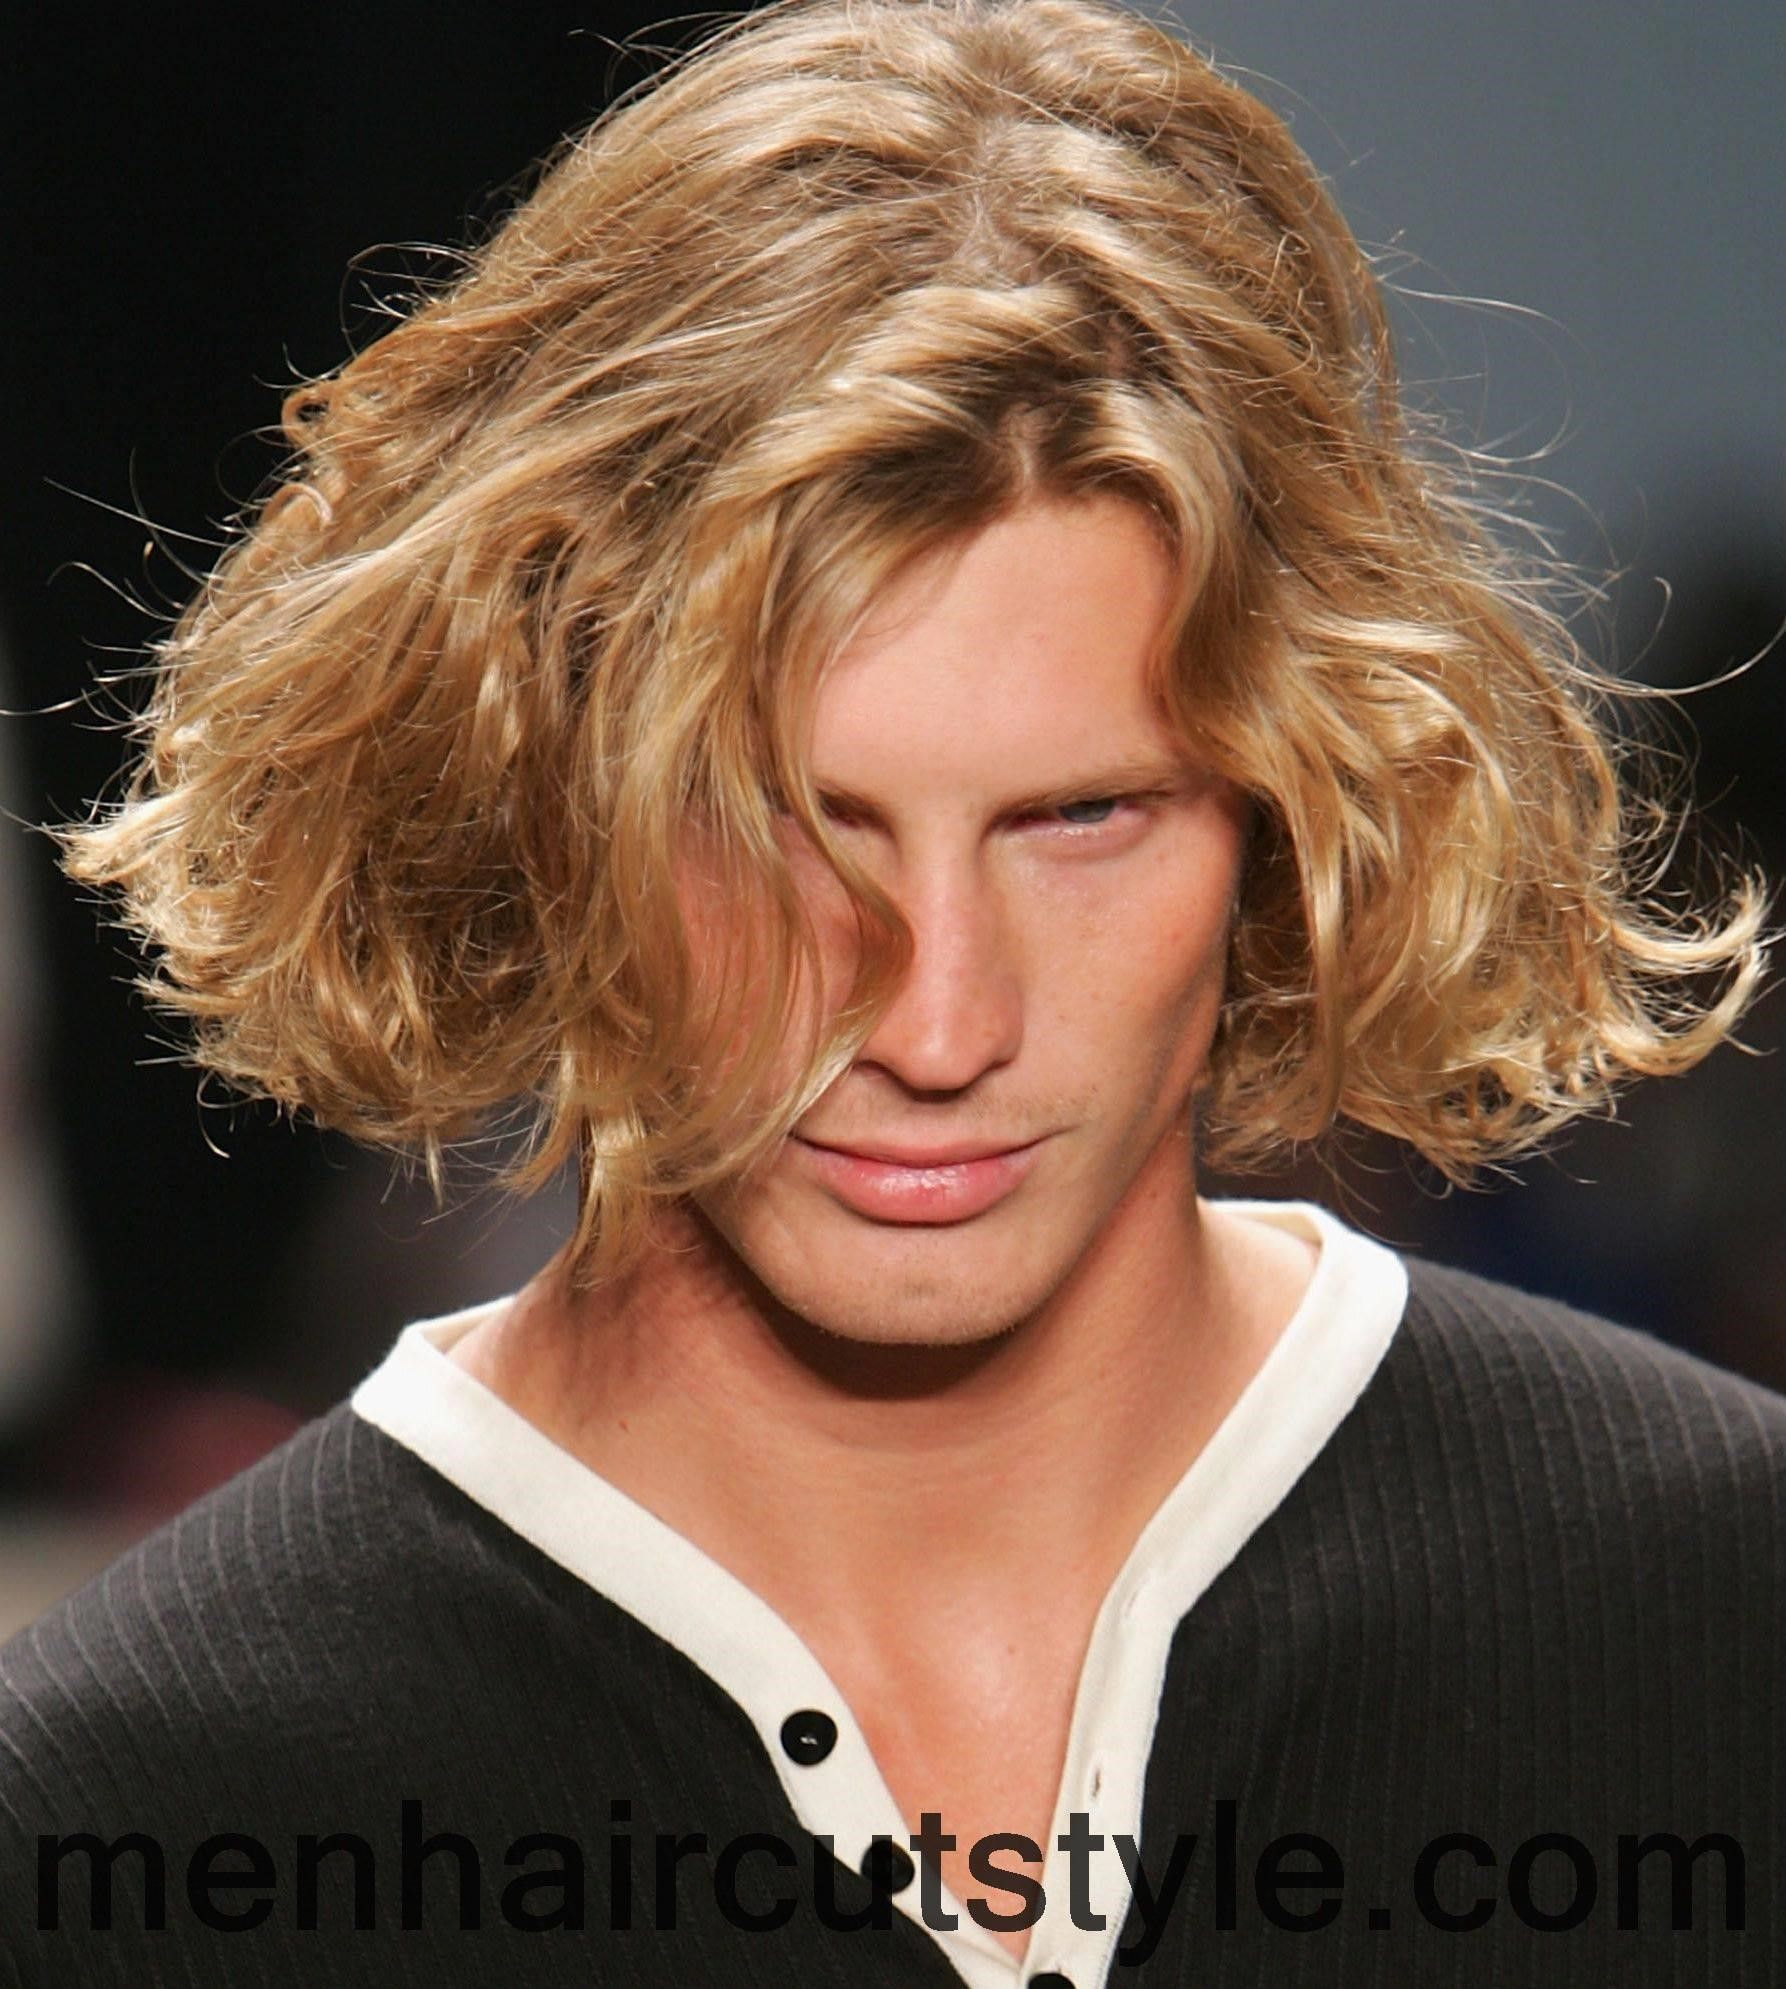 Surfer Hairstyles For Men Long Hair Styles For Men Cool Hairstyles Awesome Male Hair